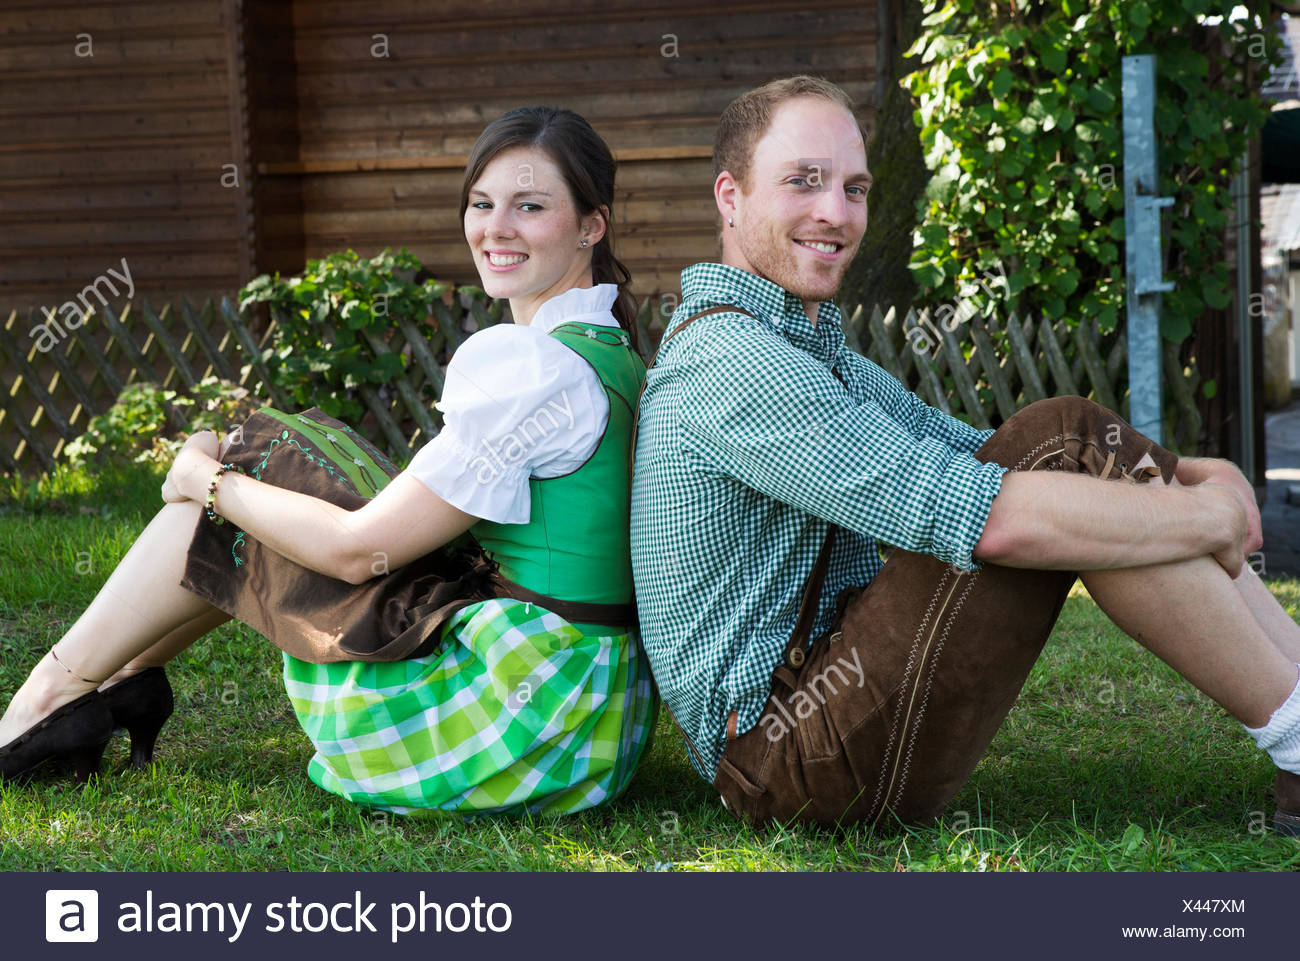 bavarian couple sitting in the grass - Stock Image